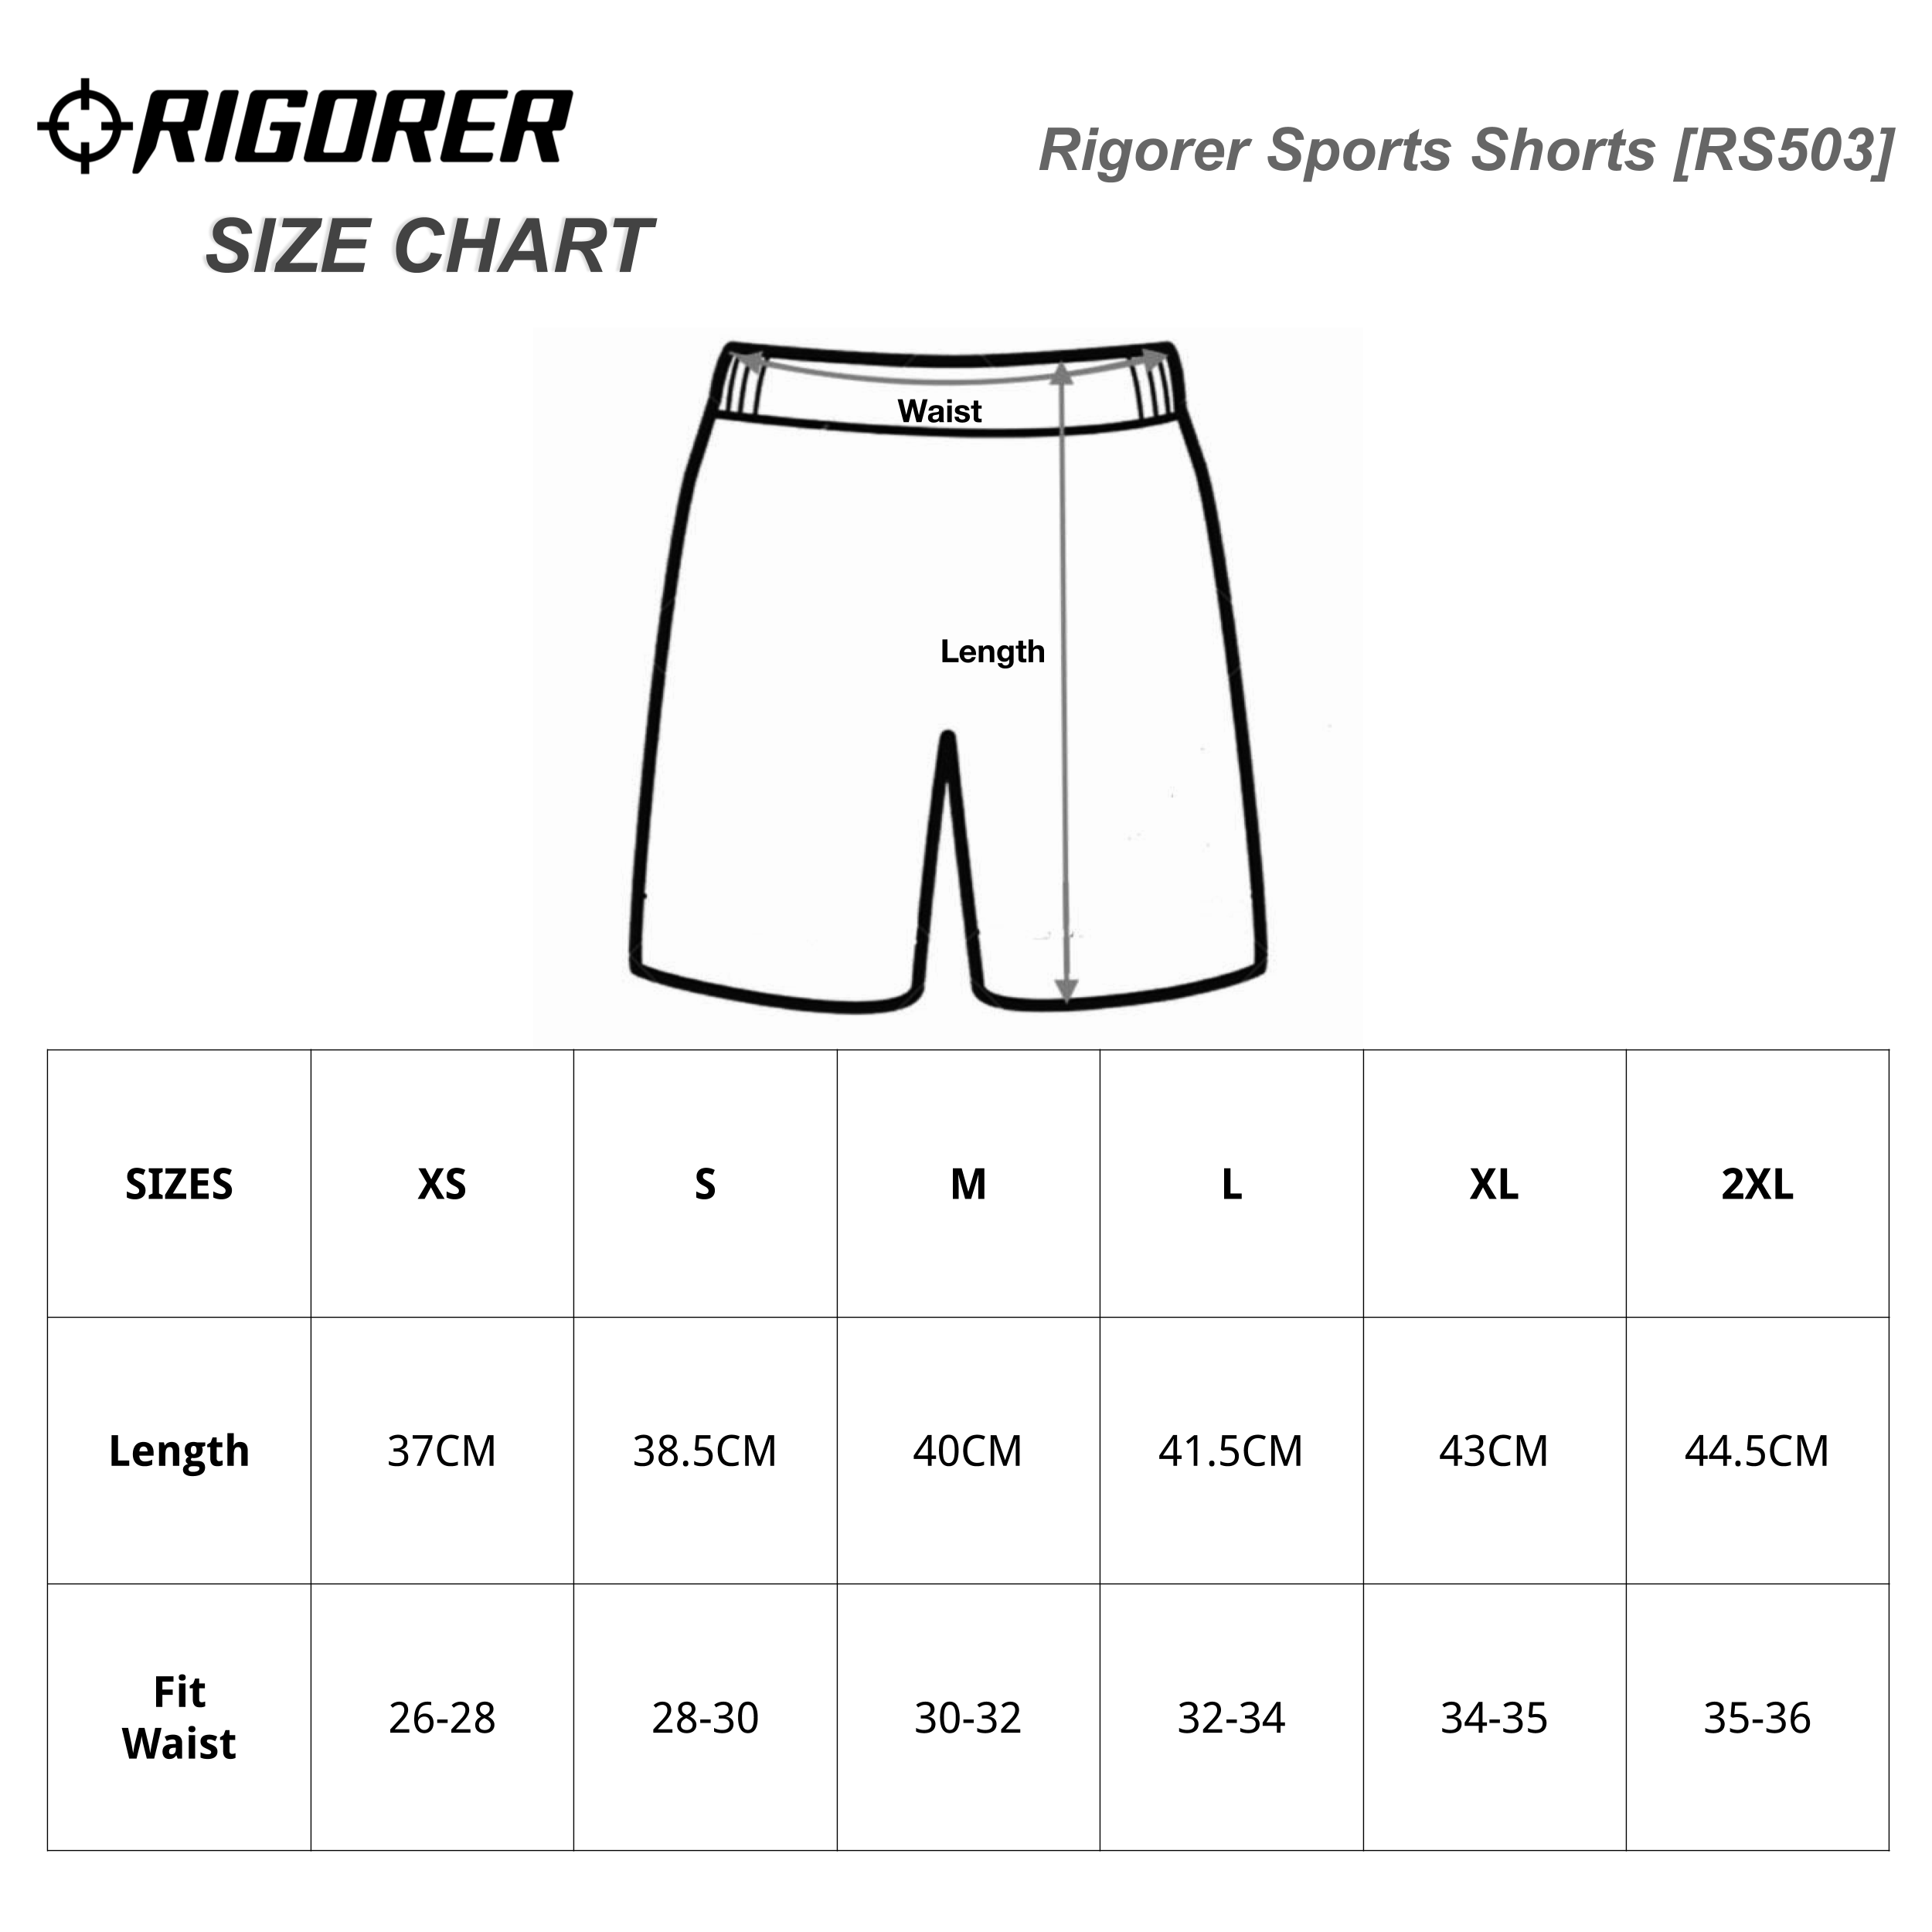 Rigorer Sports Shorts [RS503] Sizing Chart